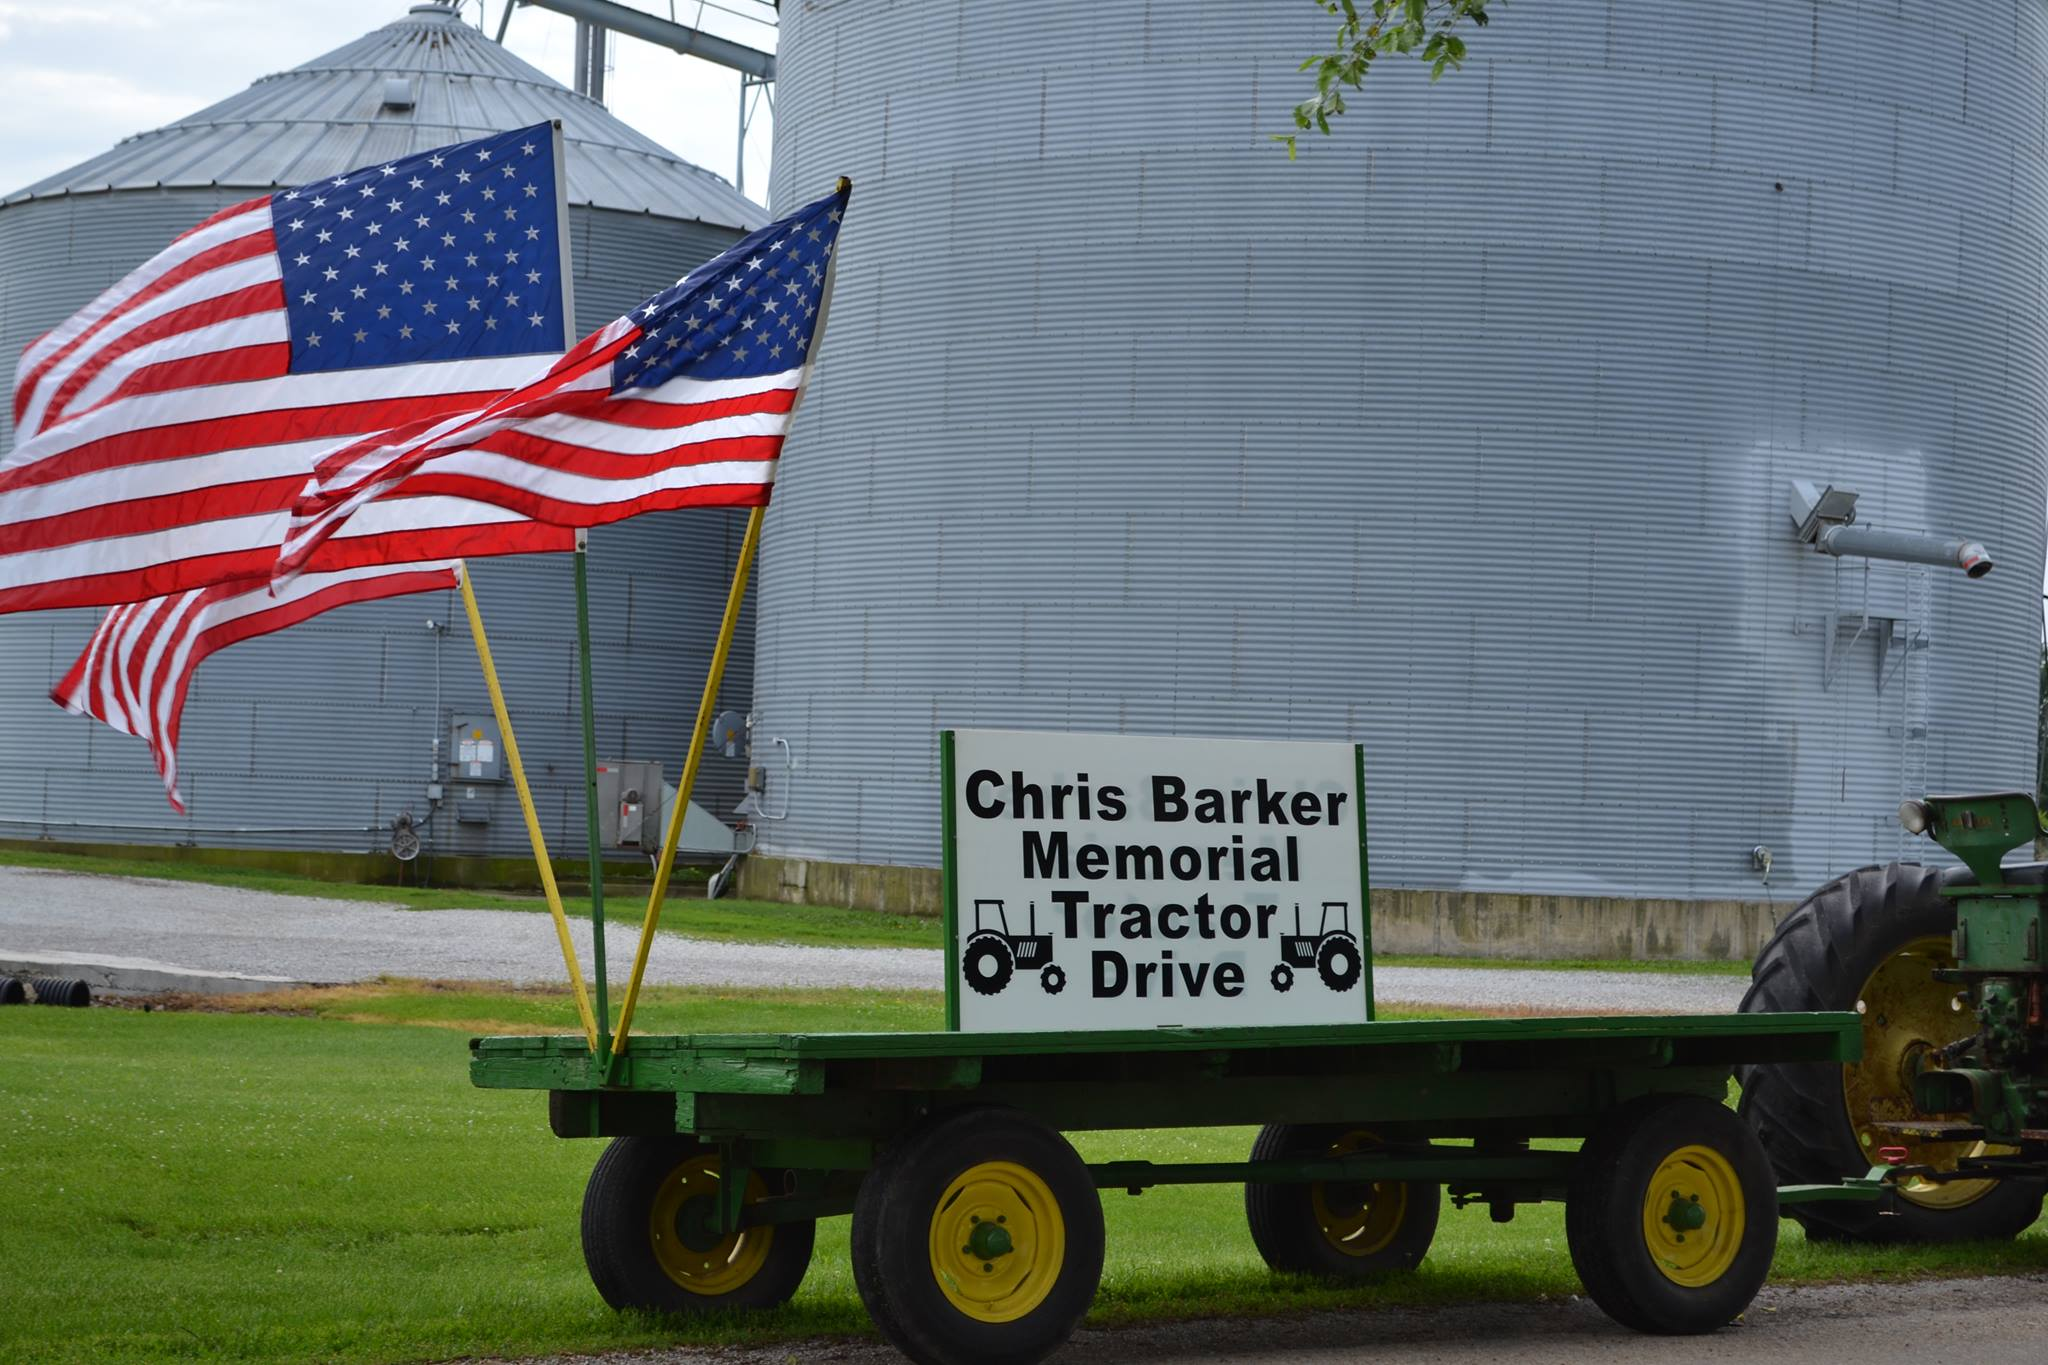 10th Annual Chris Barker Memorial Tractor Drive and Show